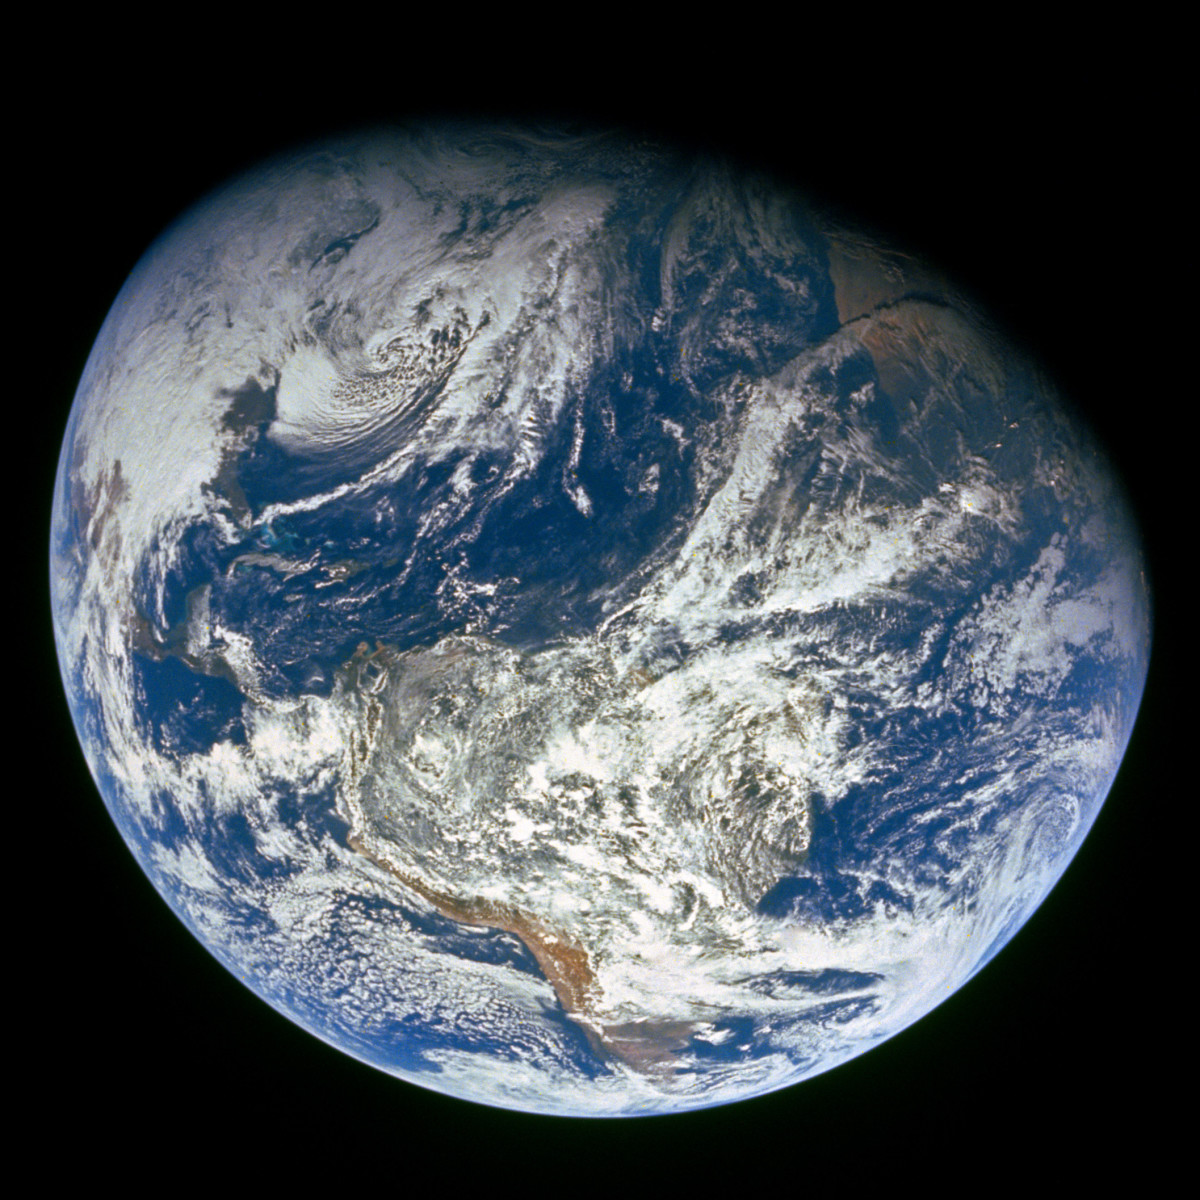 The first image taken by humans of the whole Earth. Photographed by the crew of Apollo 8, the photo shows the Earth from a distance of about 30,000 km.